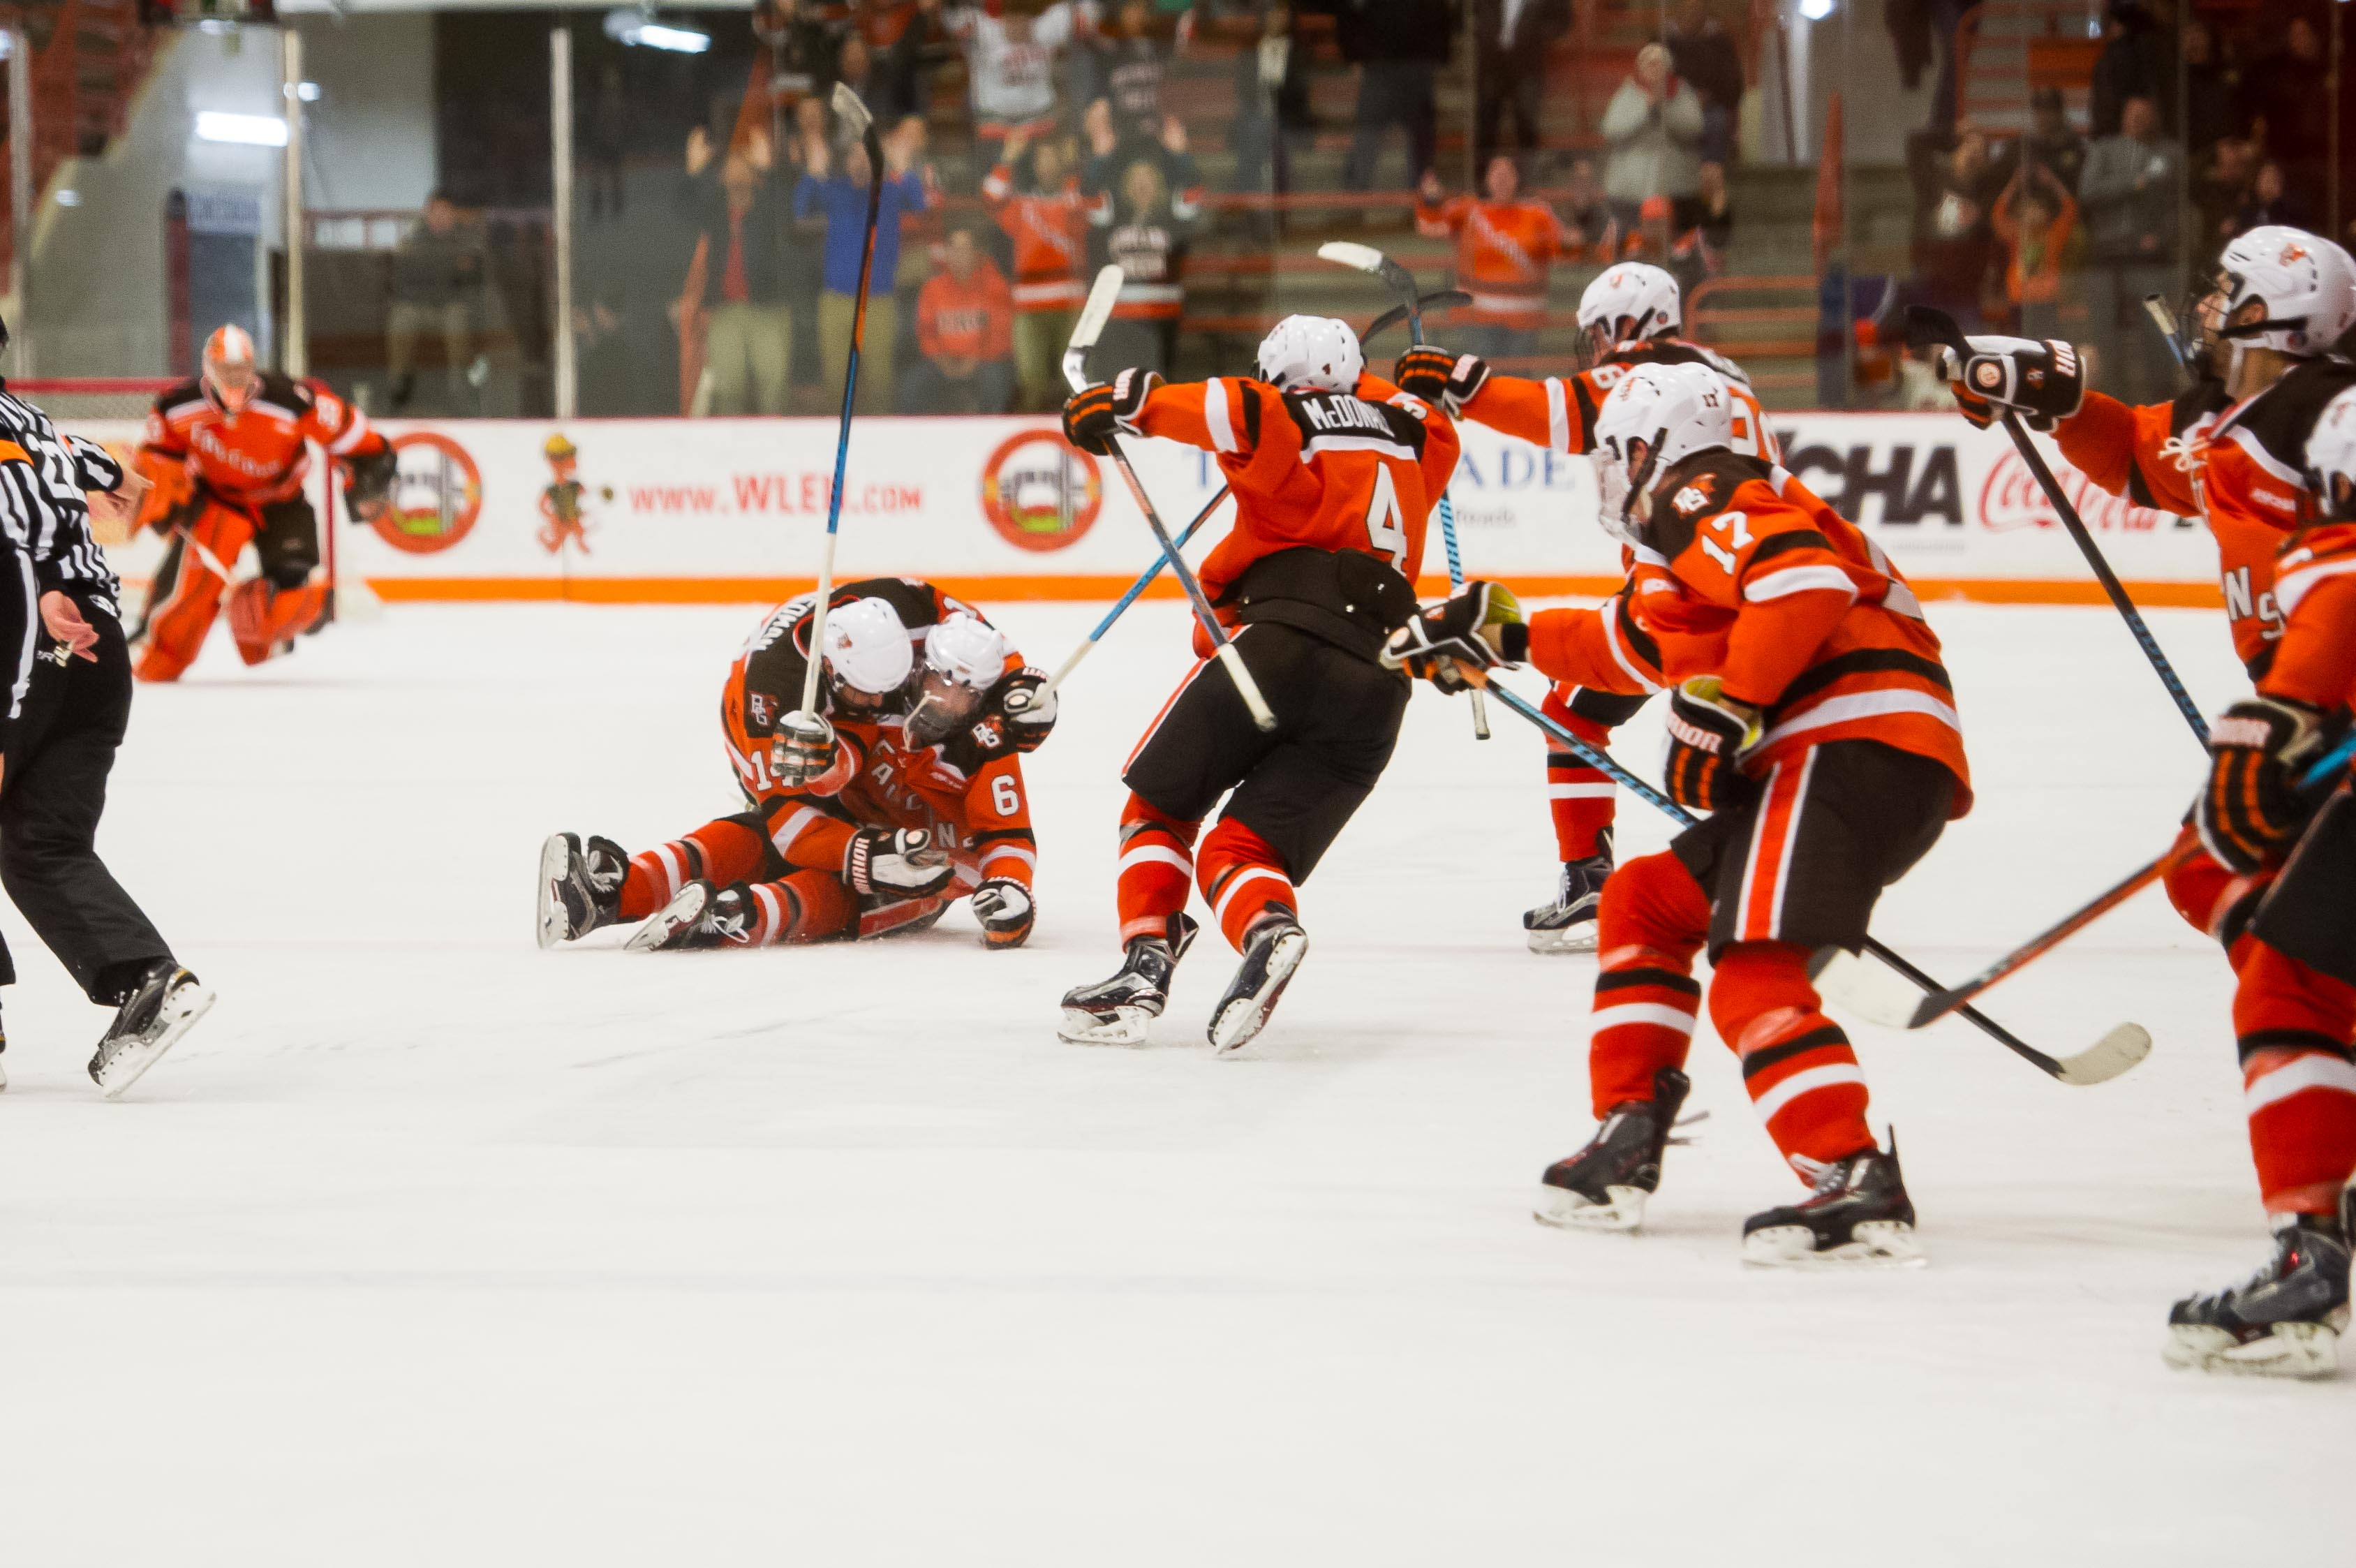 Miracle McLain: Shorthanded goal in OT earns Falcons sweep